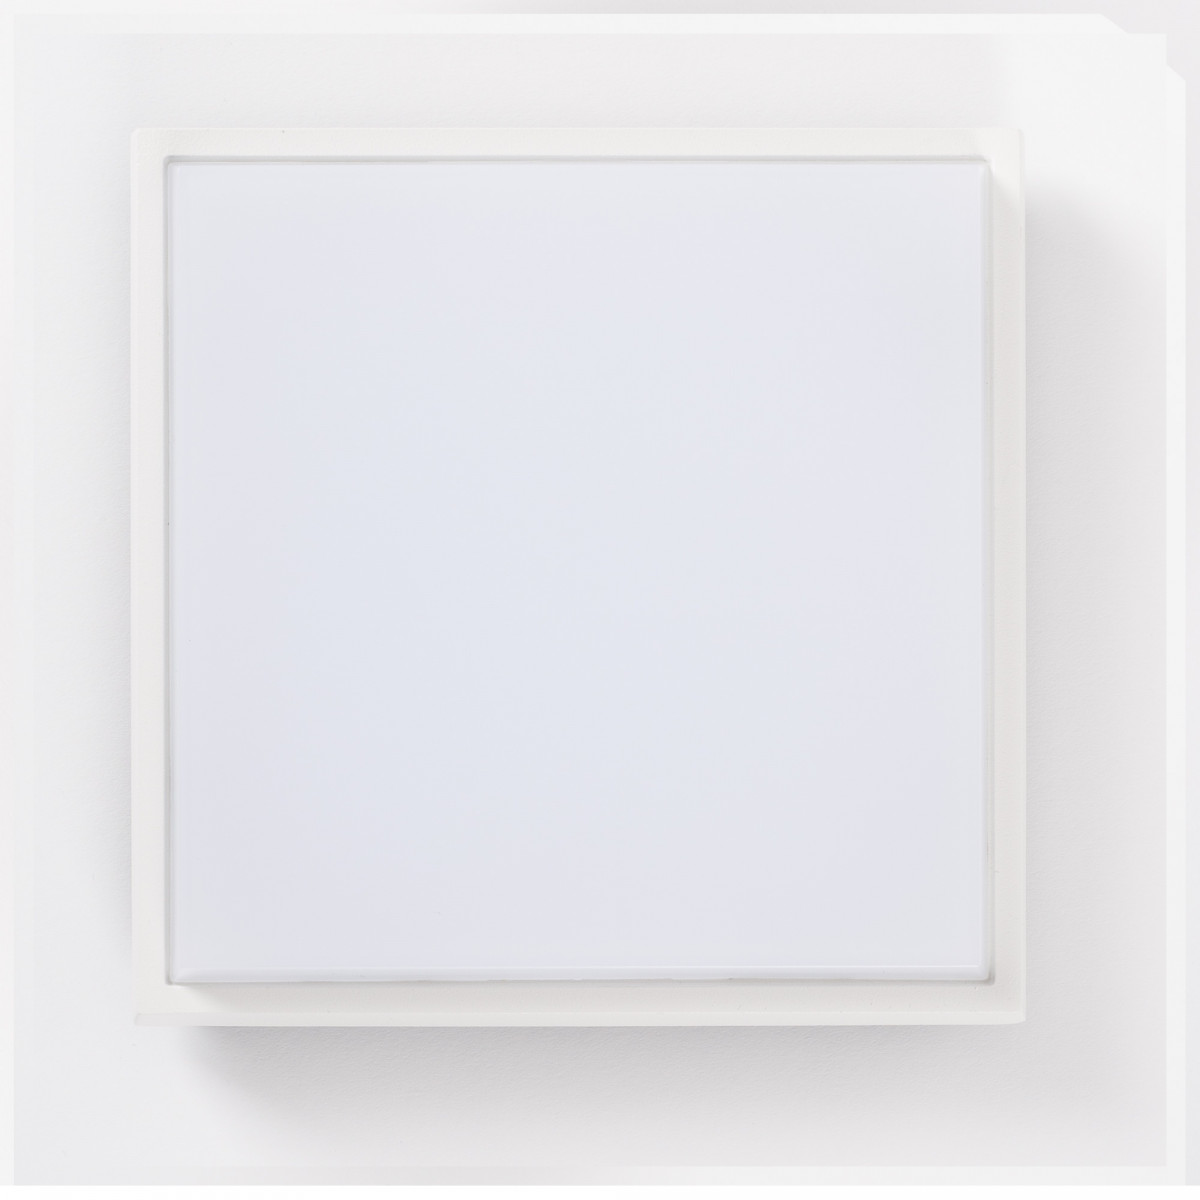 Buitenlamp Stealth square